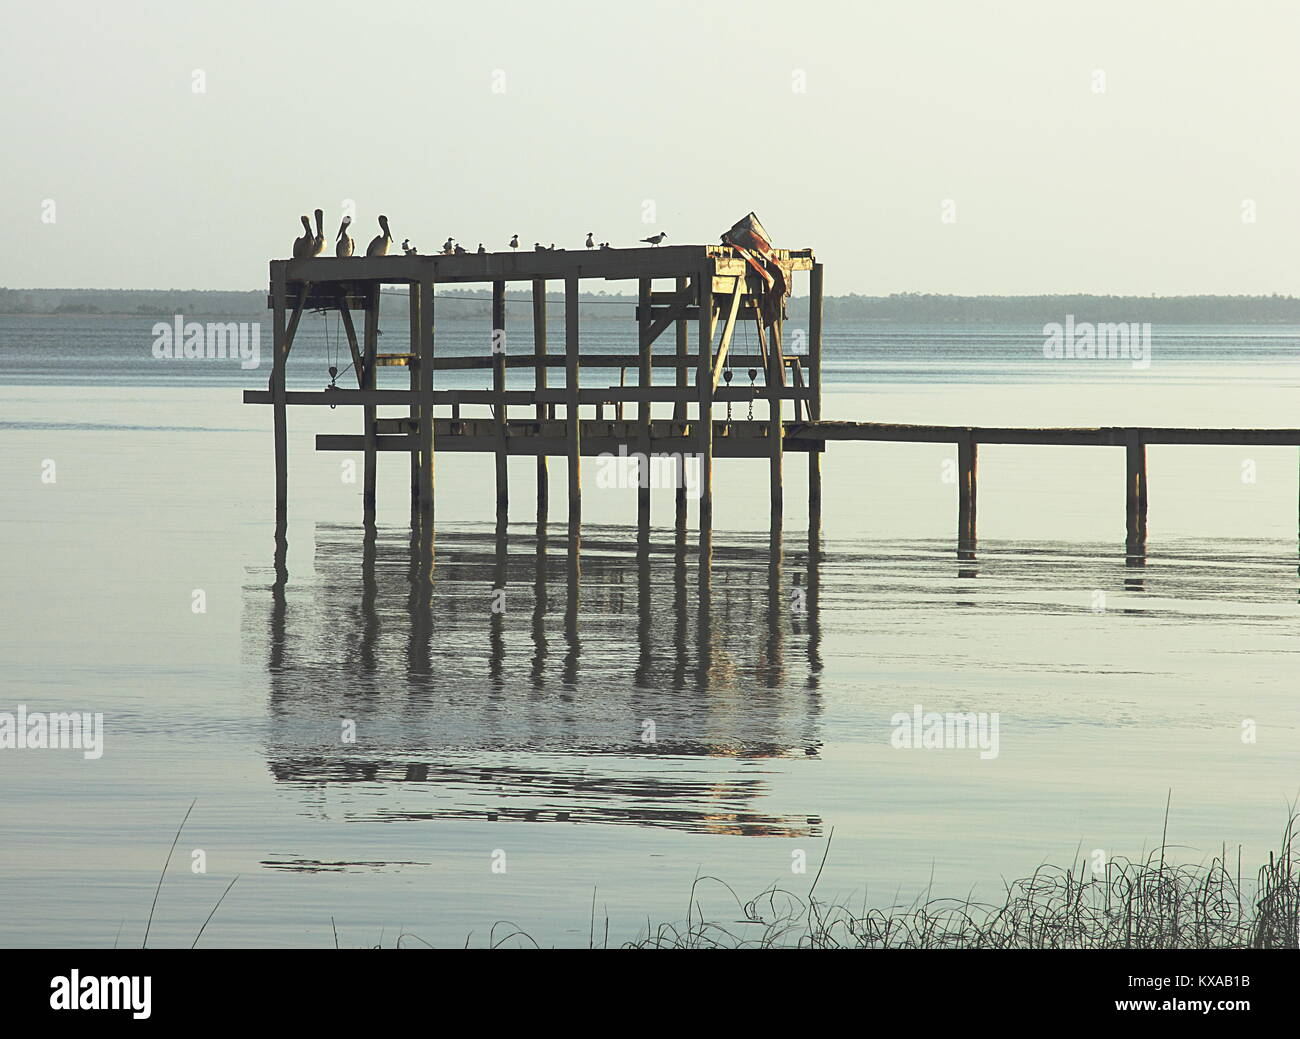 Florida, Apalachicola Bay. Morning view on Gulf of Mexico - Stock Image